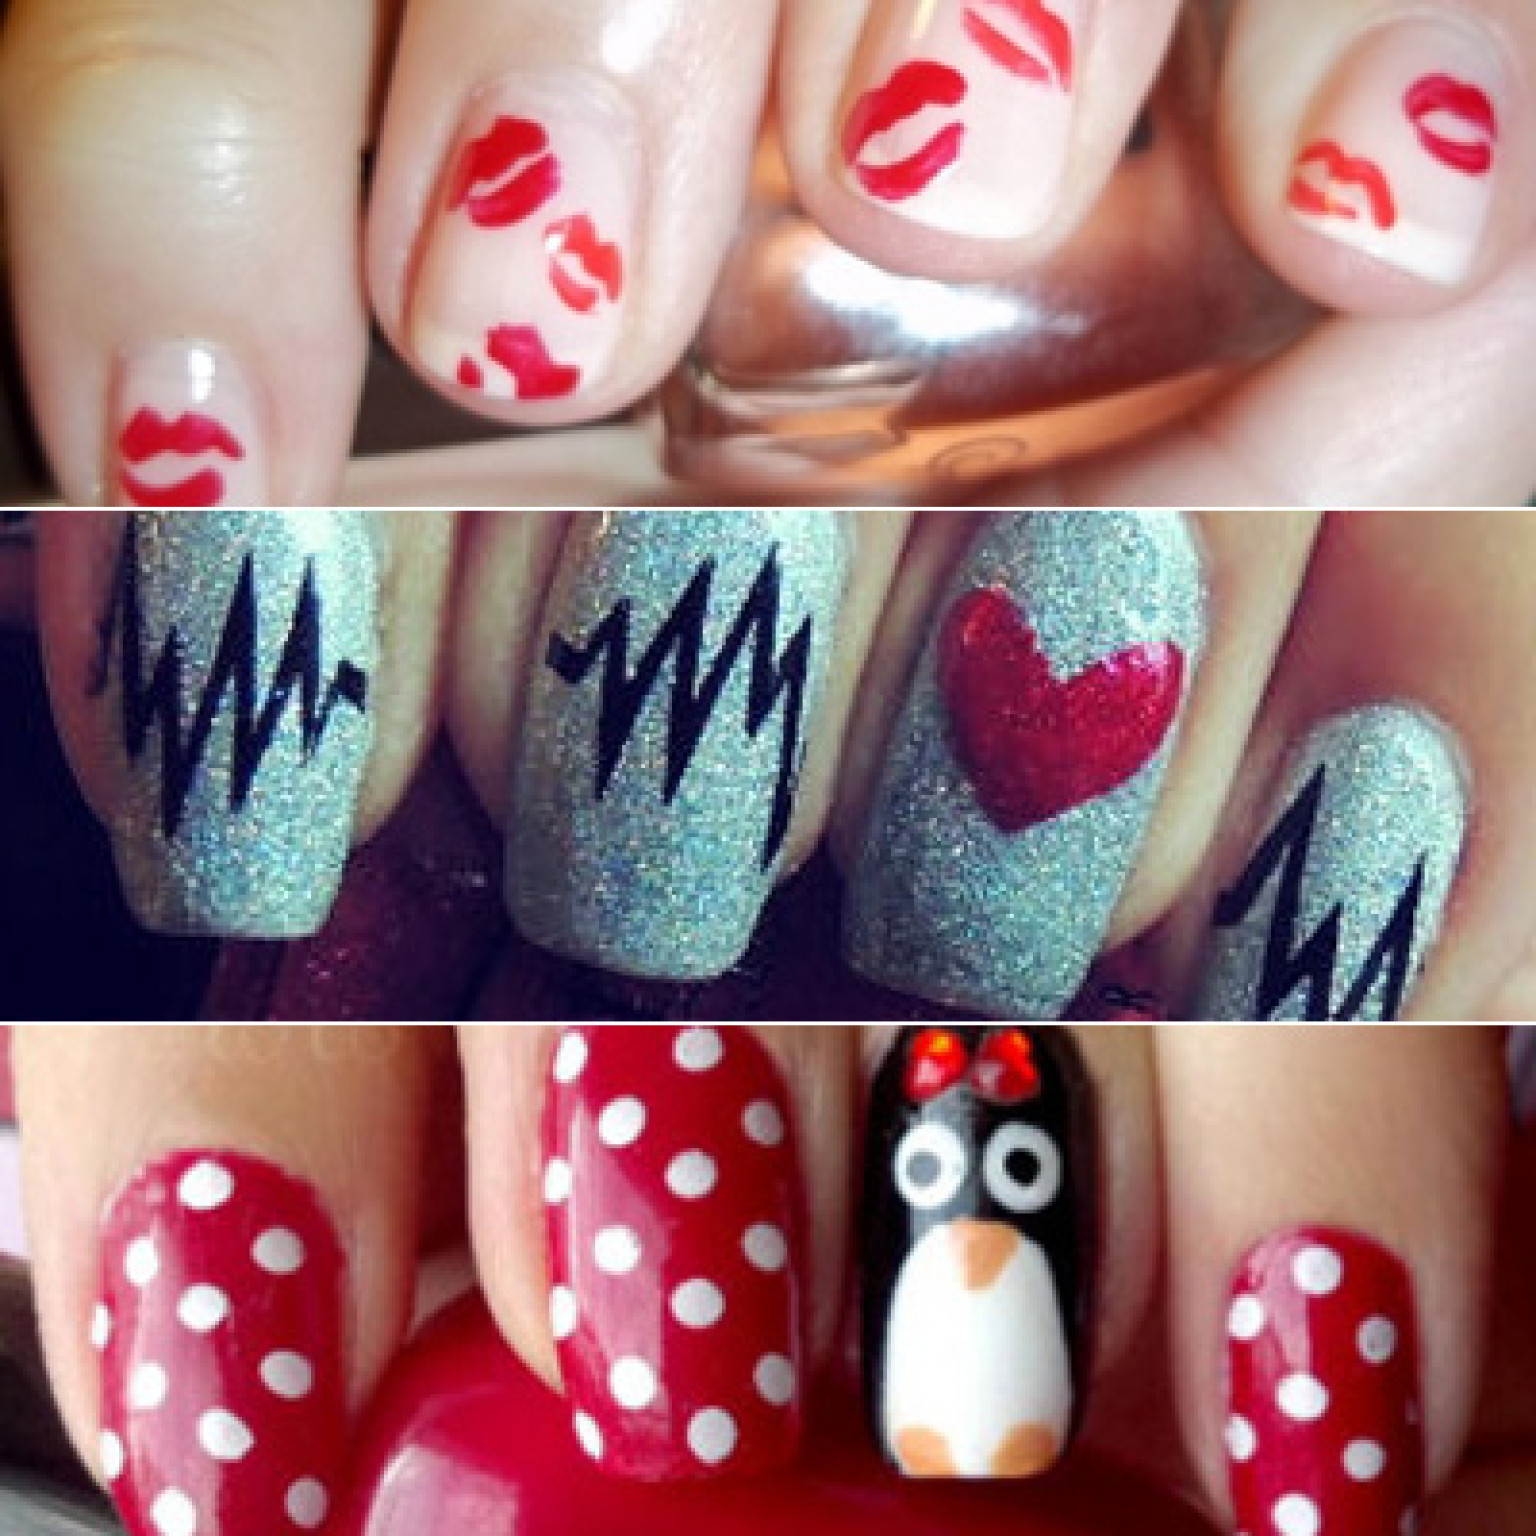 28 valentines day nail art ideas to put you in the mood for love photos huffpost - Valentines Nail